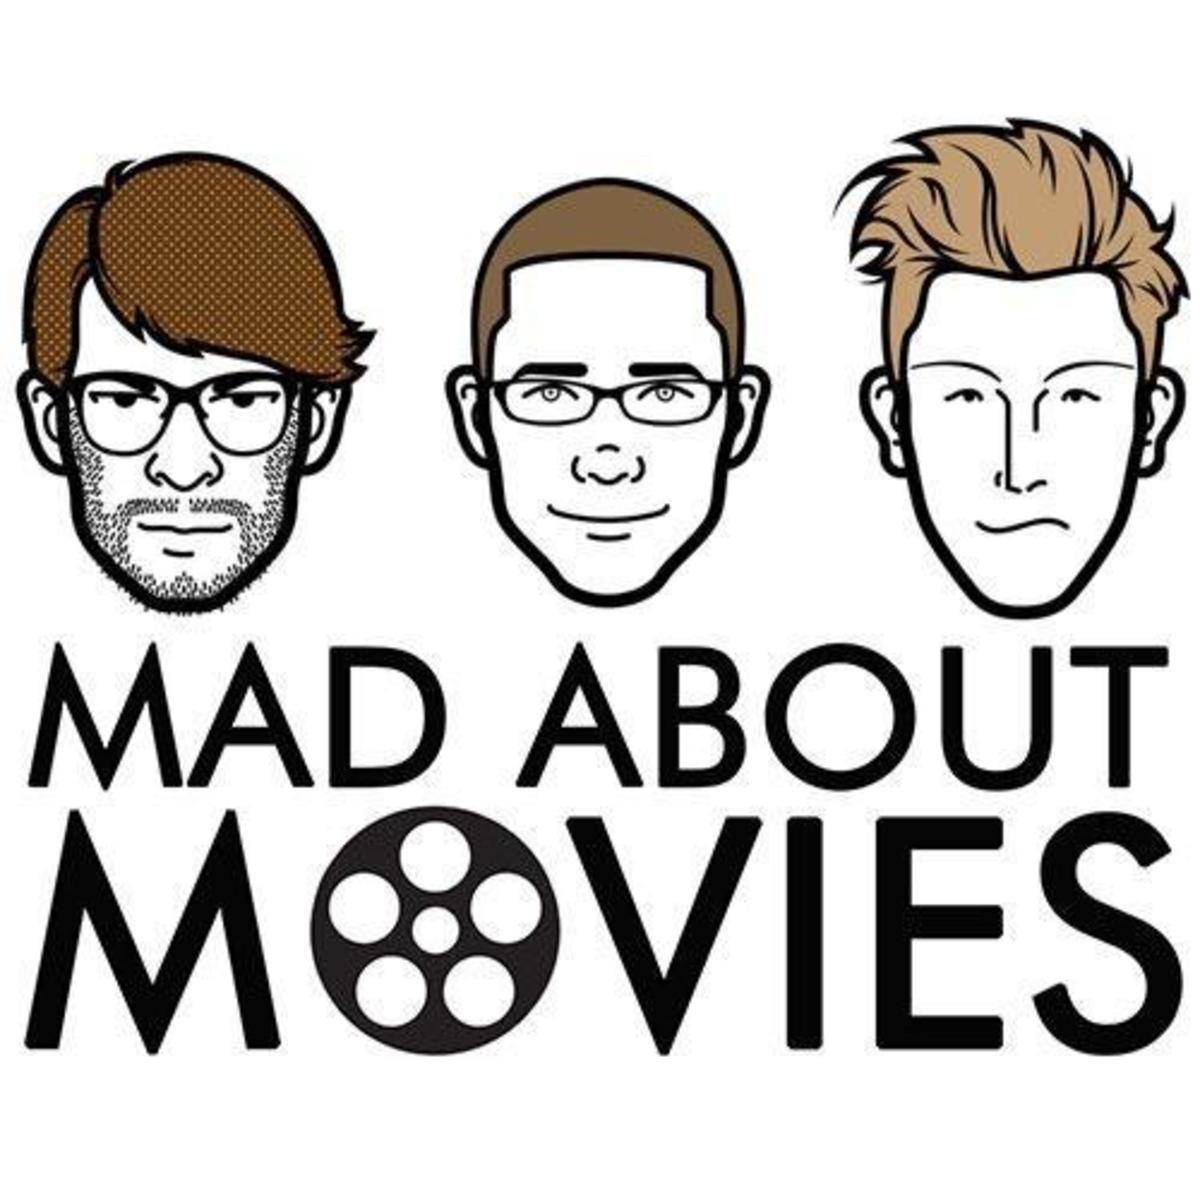 The Mad About Movies podcast team works to review a new movie every week.